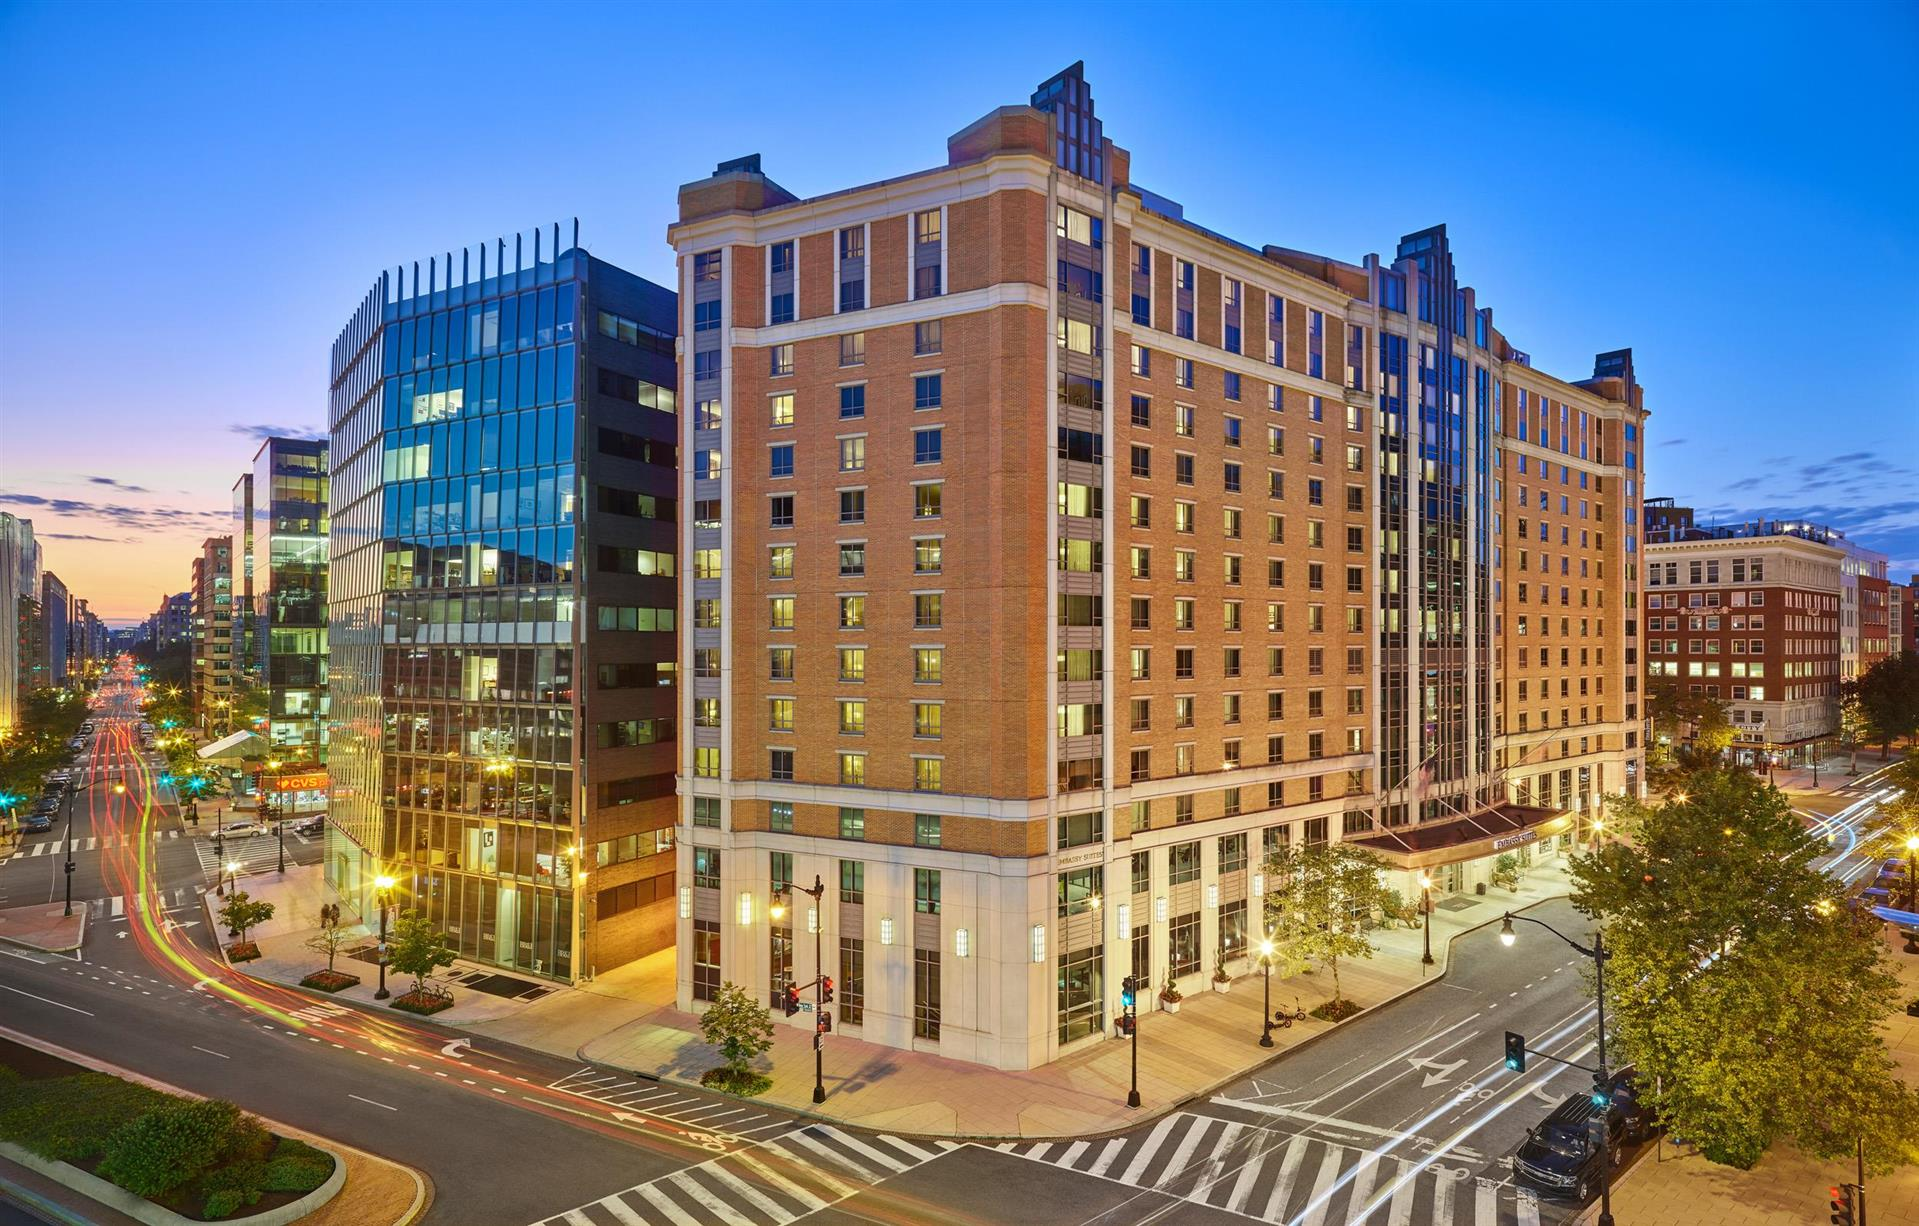 Meetings And Events At Hilton Garden Inn Washington Dc Georgetown